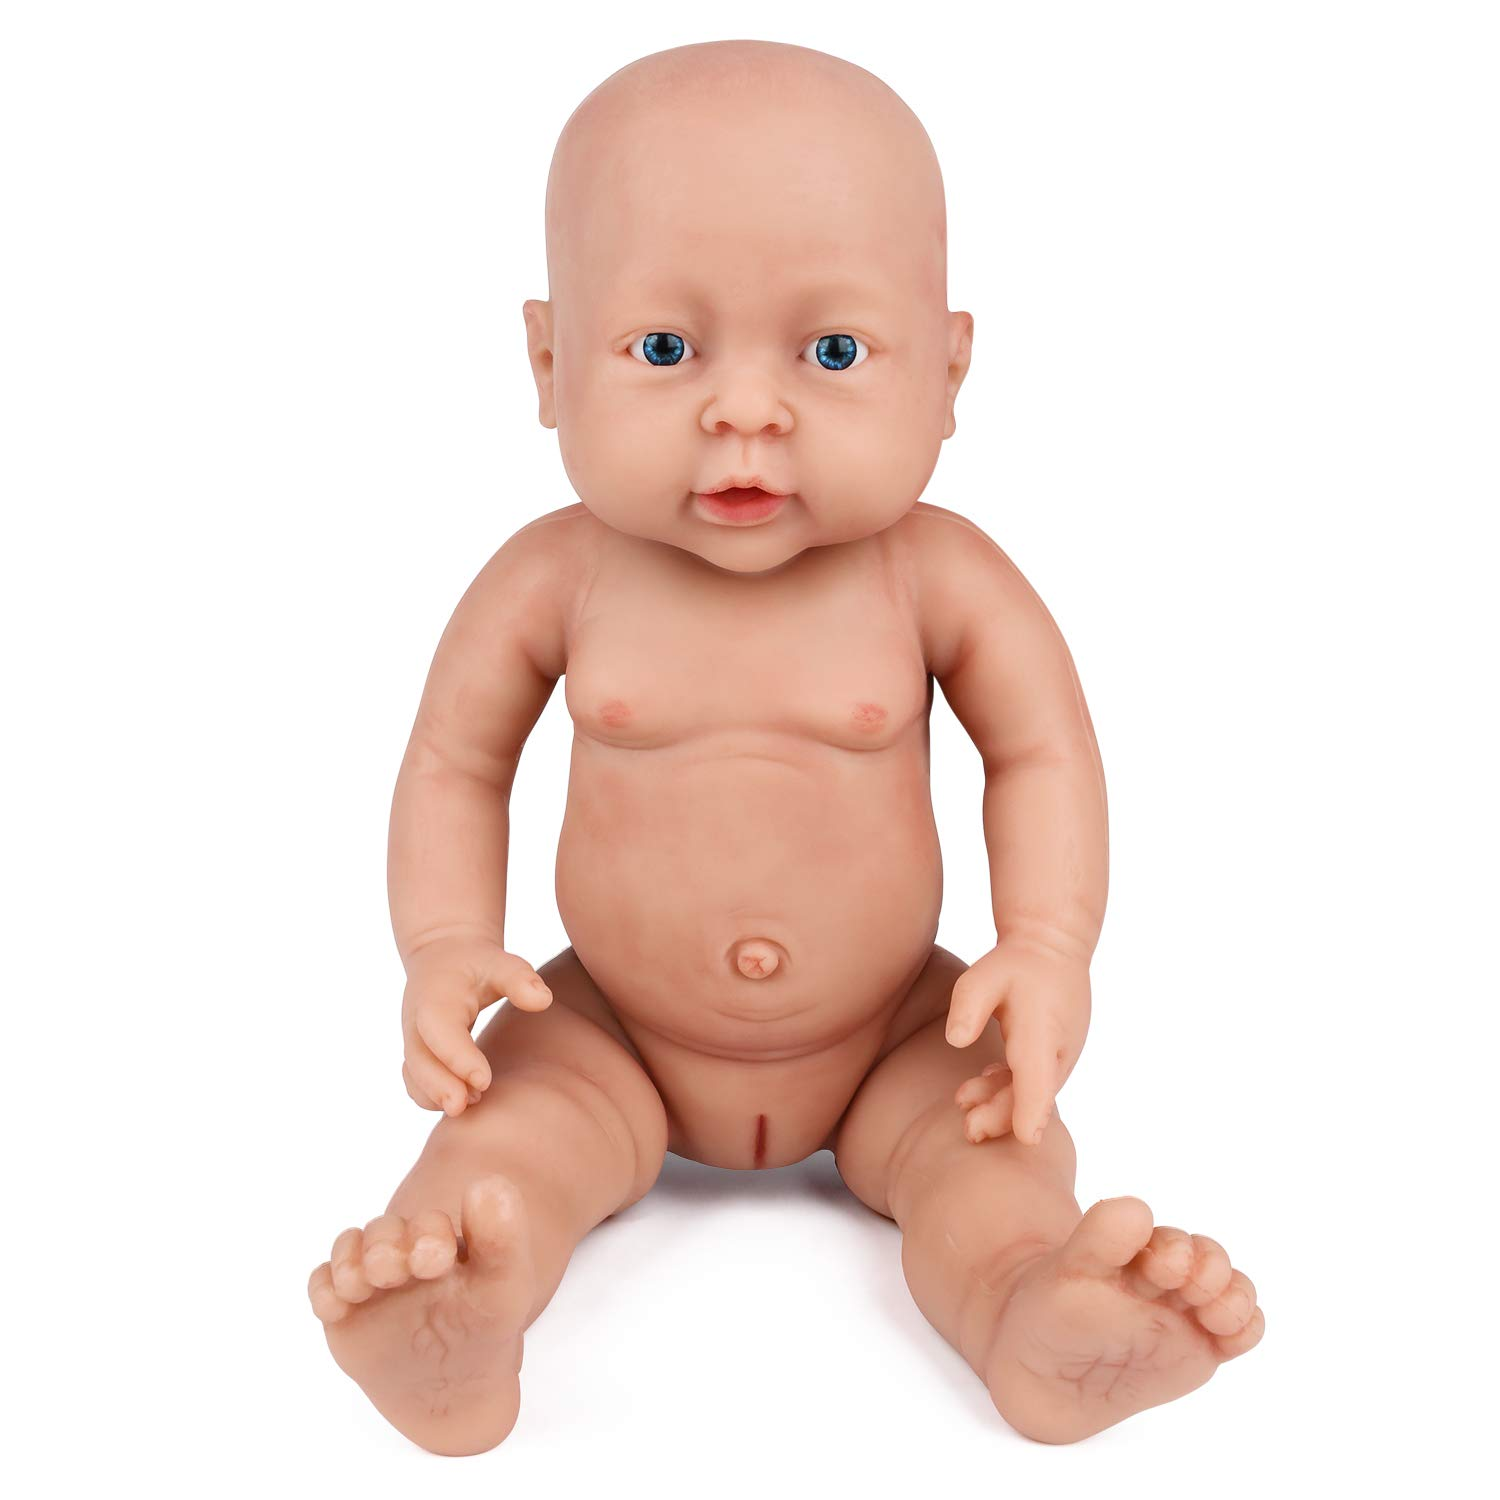 Vollence 16 Inch Realistic Reborn Baby Doll Pvc Free Solid Platinum Liquid Full Body Silicone Real Baby Dolls Handmade Lifelike Baby Doll With Clothes Girl Buy Online In Thailand At Thailand Desertcart Com Productid 66564949